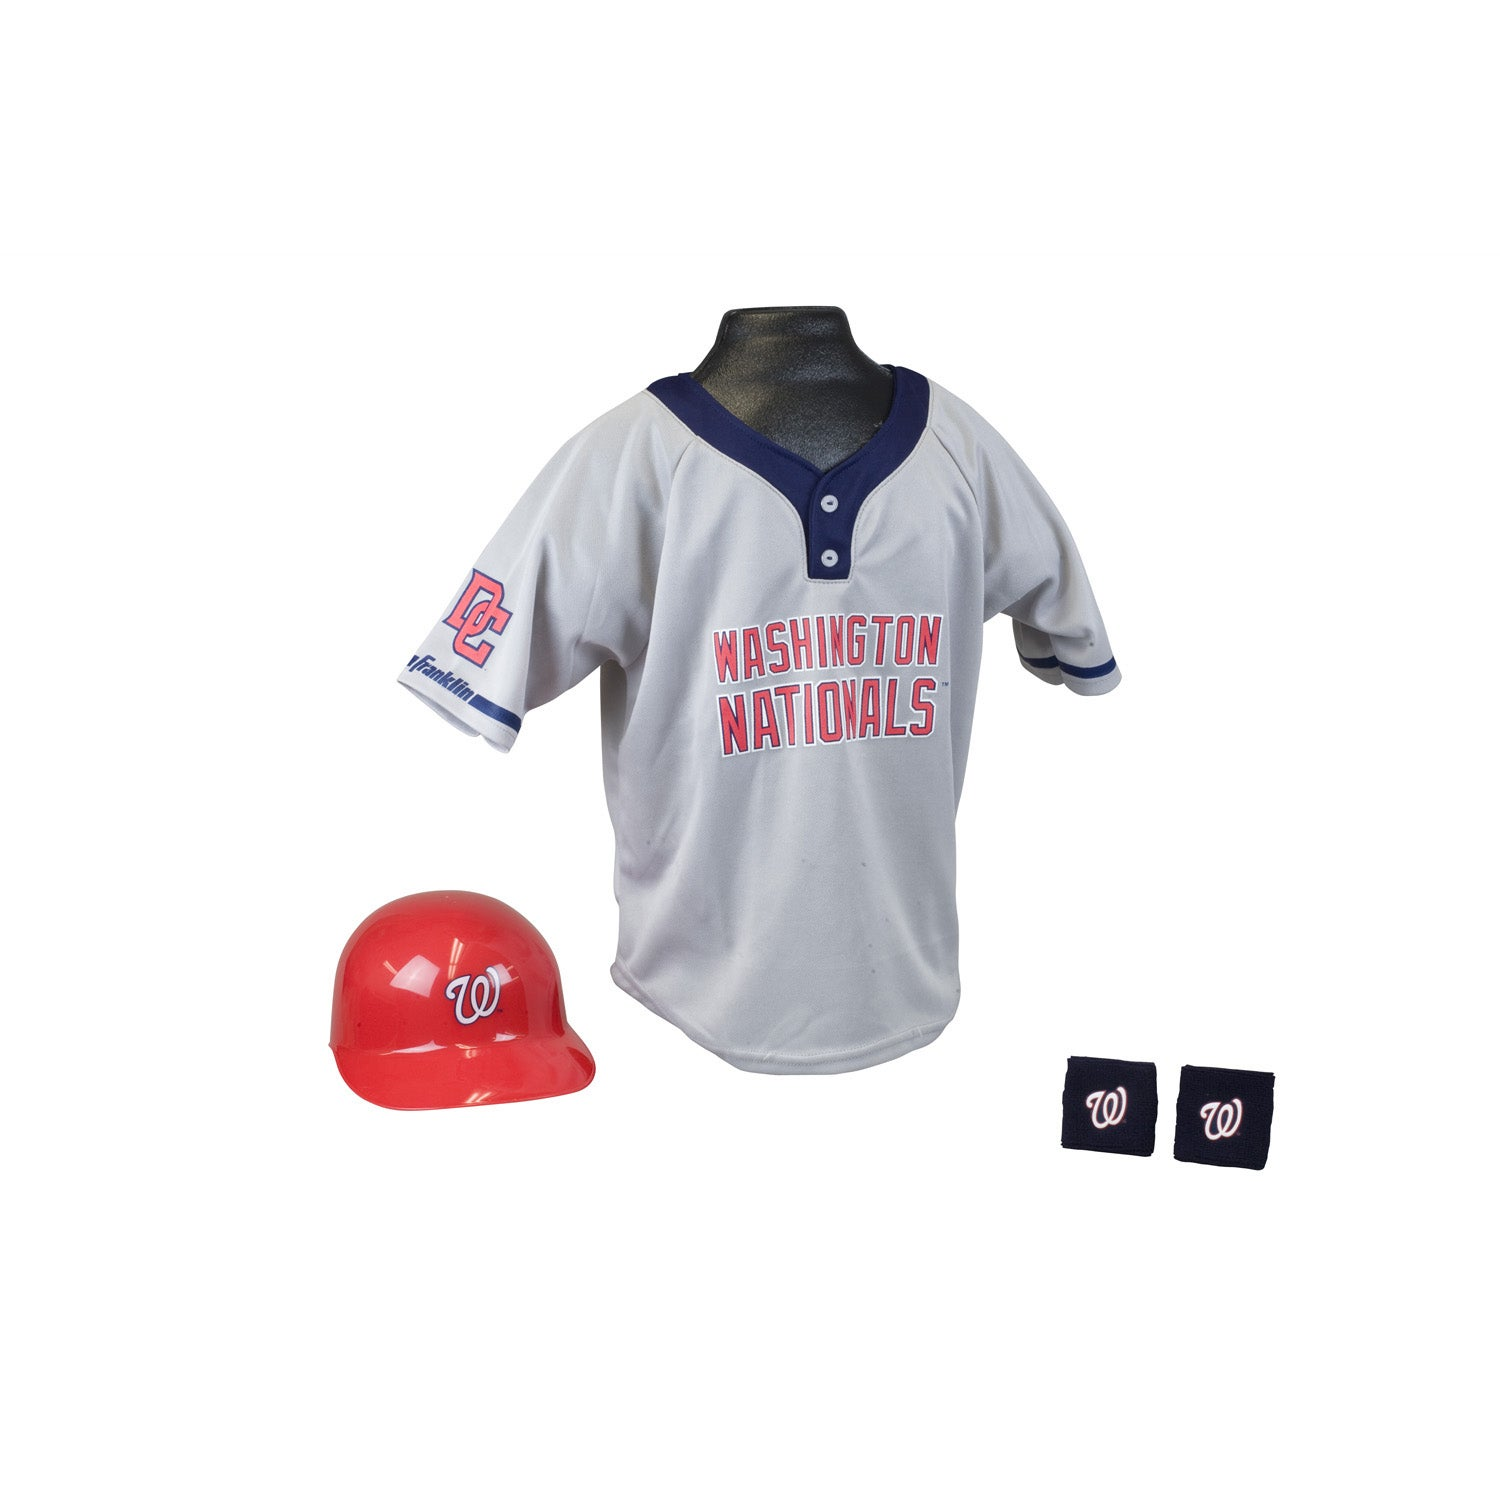 Franklin Sports MLB Washington Nationals Kids Team Uniform Set